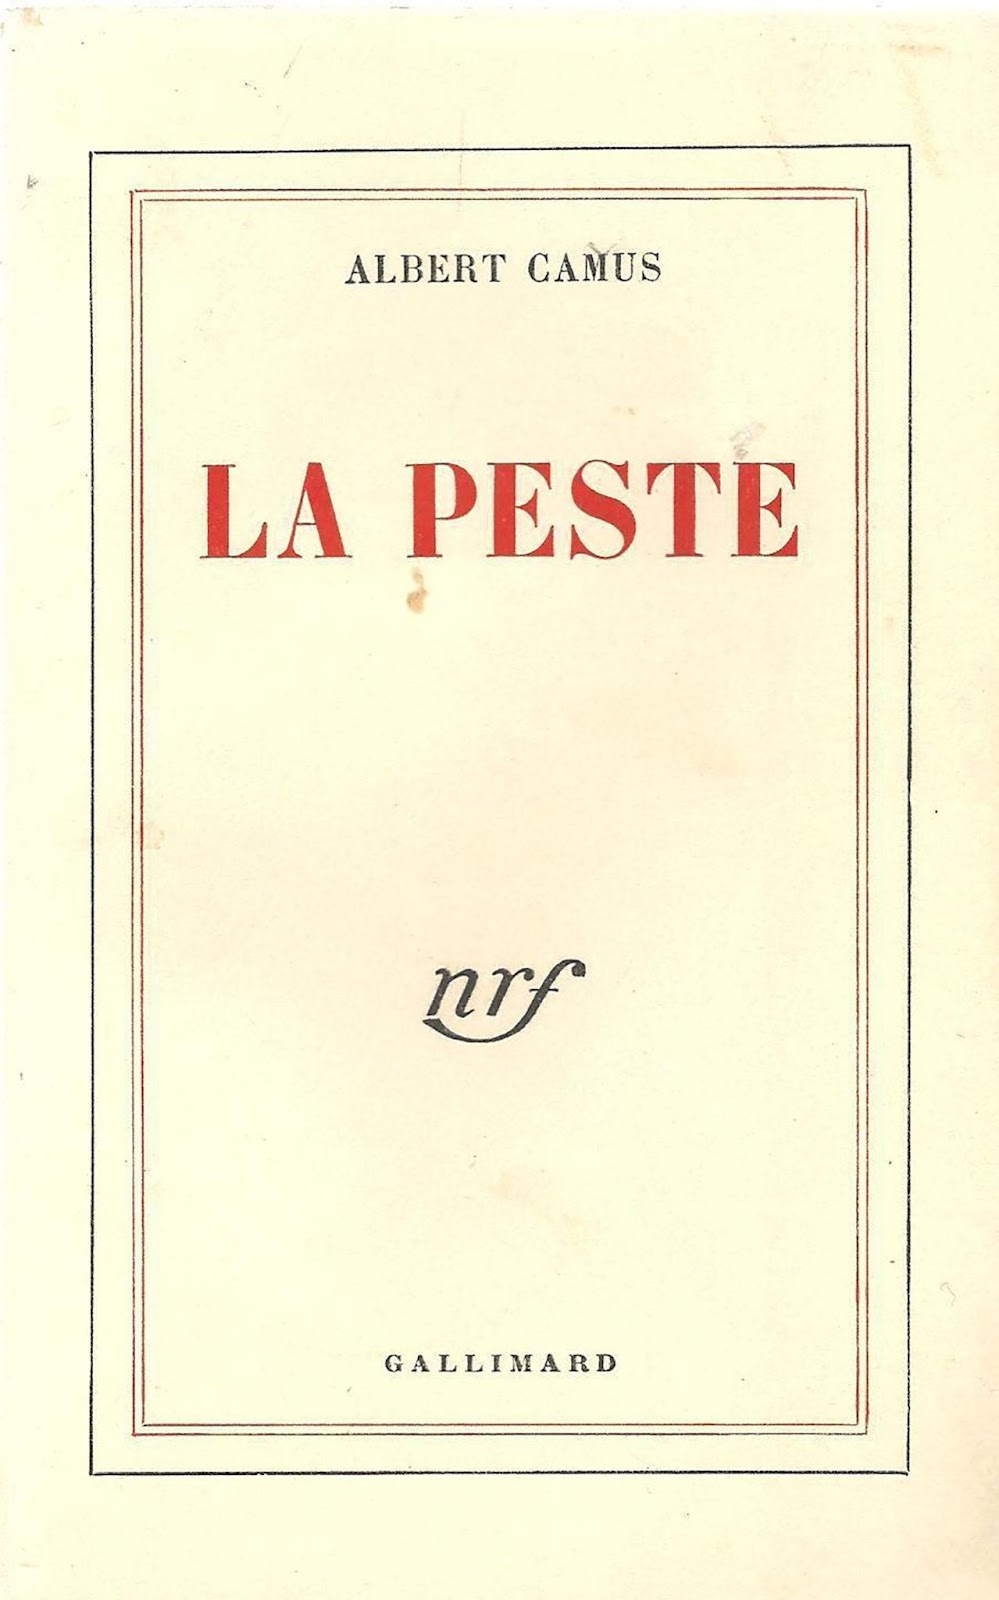 La-Peste-The-Plague- Albert Camus.jpg